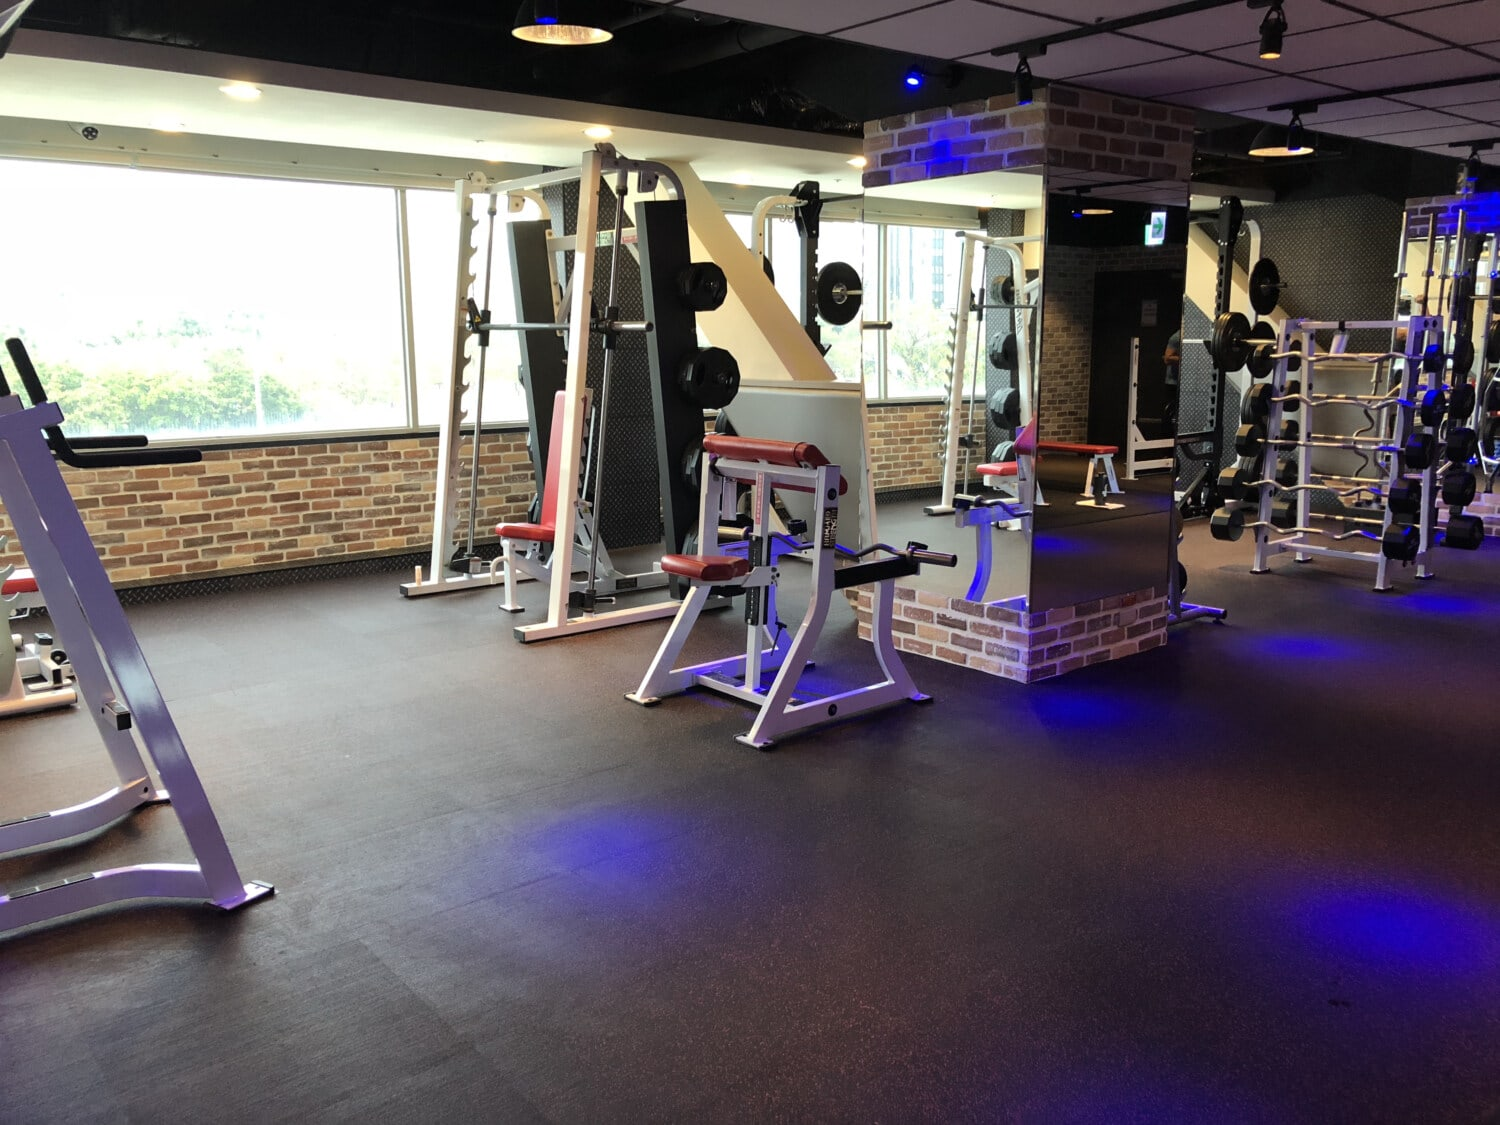 gym, sport, empty, exercise, device, treadmill, indoors, weight, room, fitness